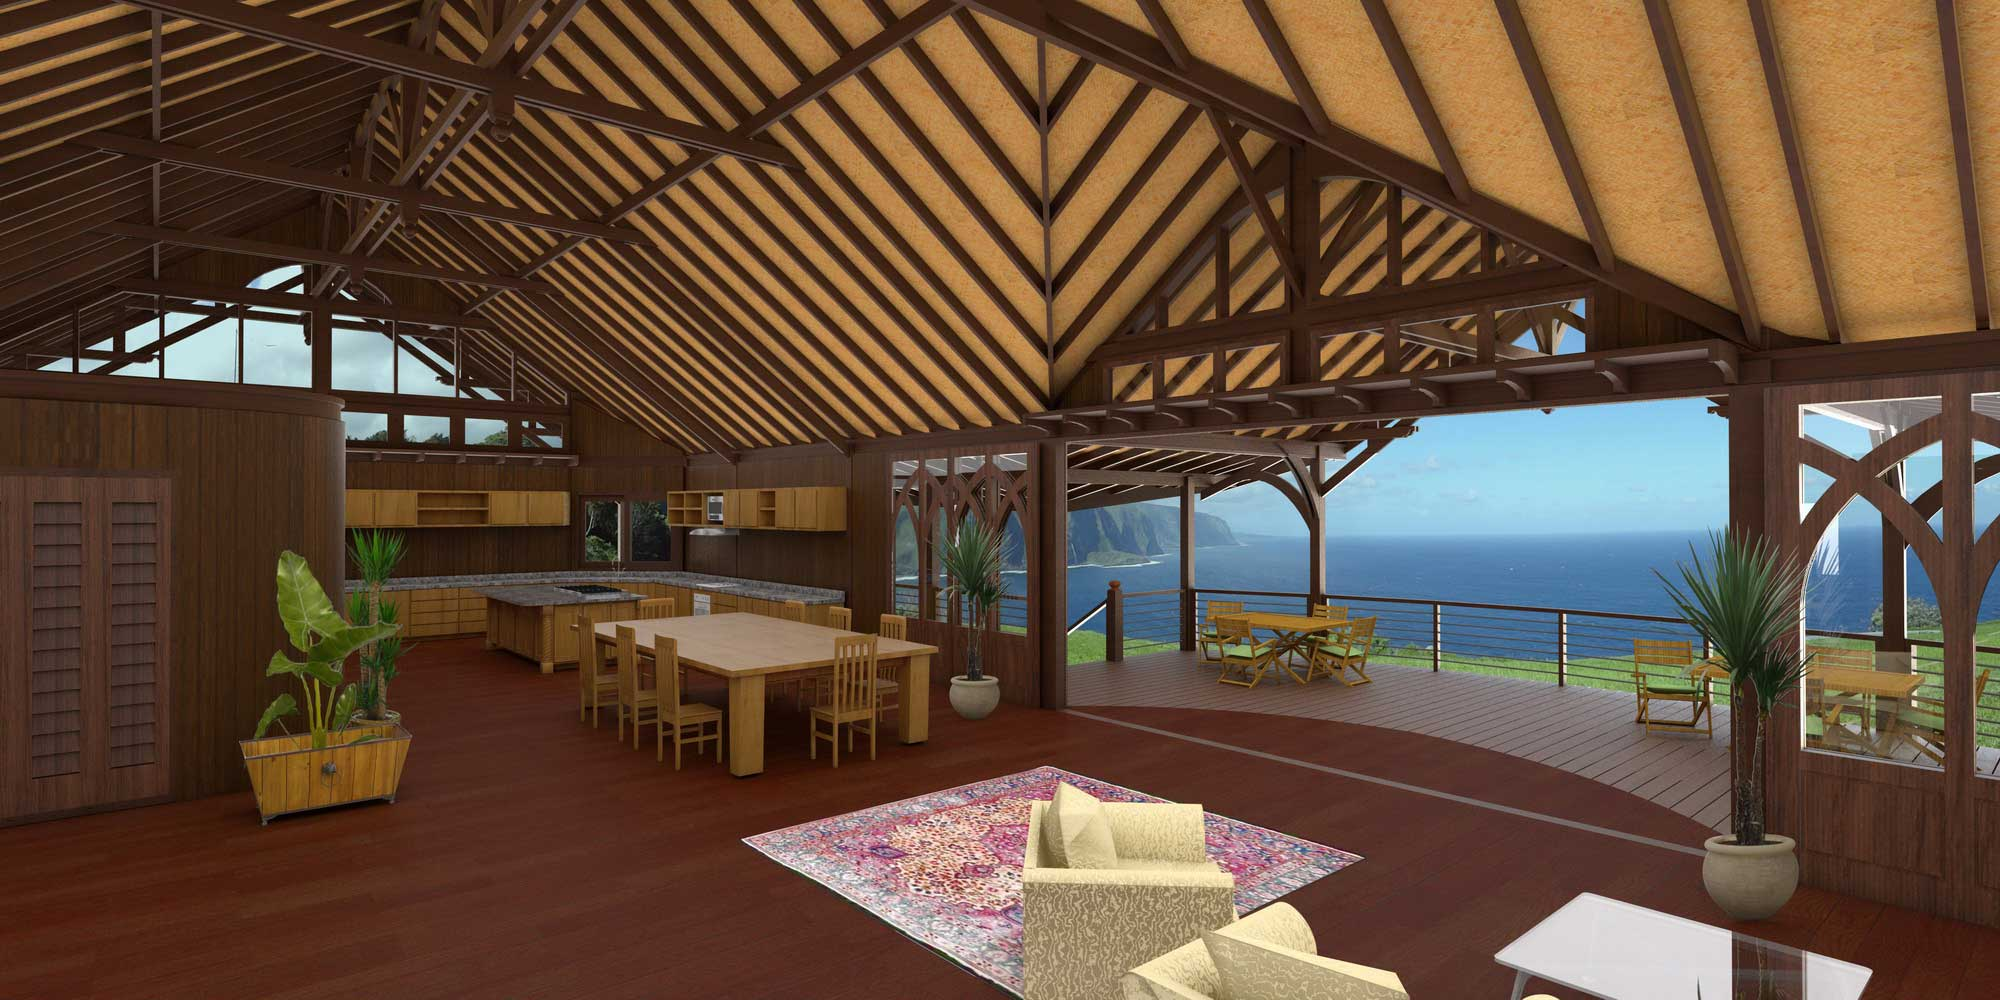 Bali style designs plans teak bali - Balinese home decorating ideas ...